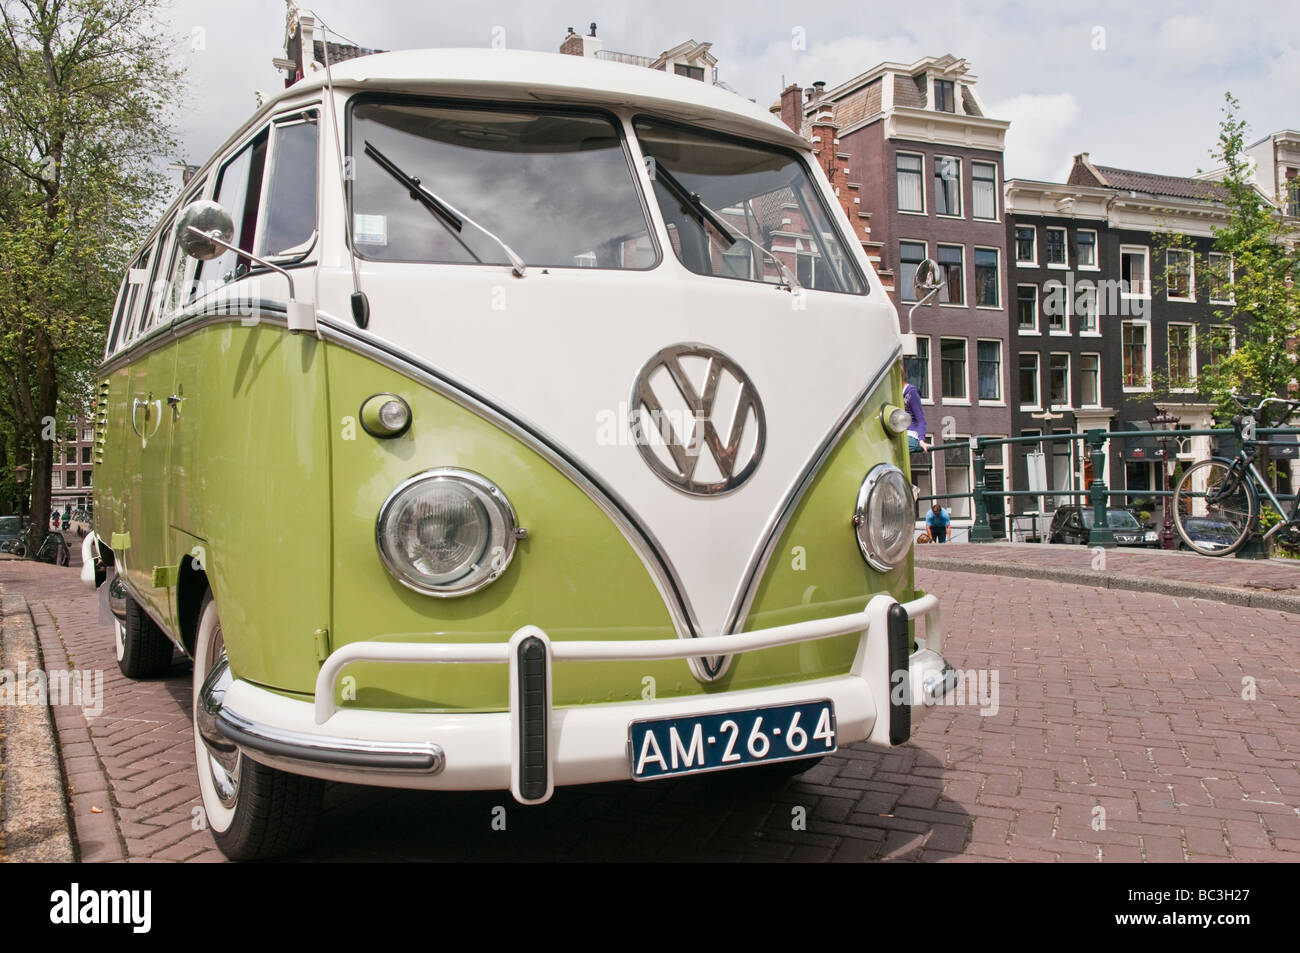 Volkswagen campervan parked on a bridge over the Prinsengracht canal in Amsterdam - Stock Image